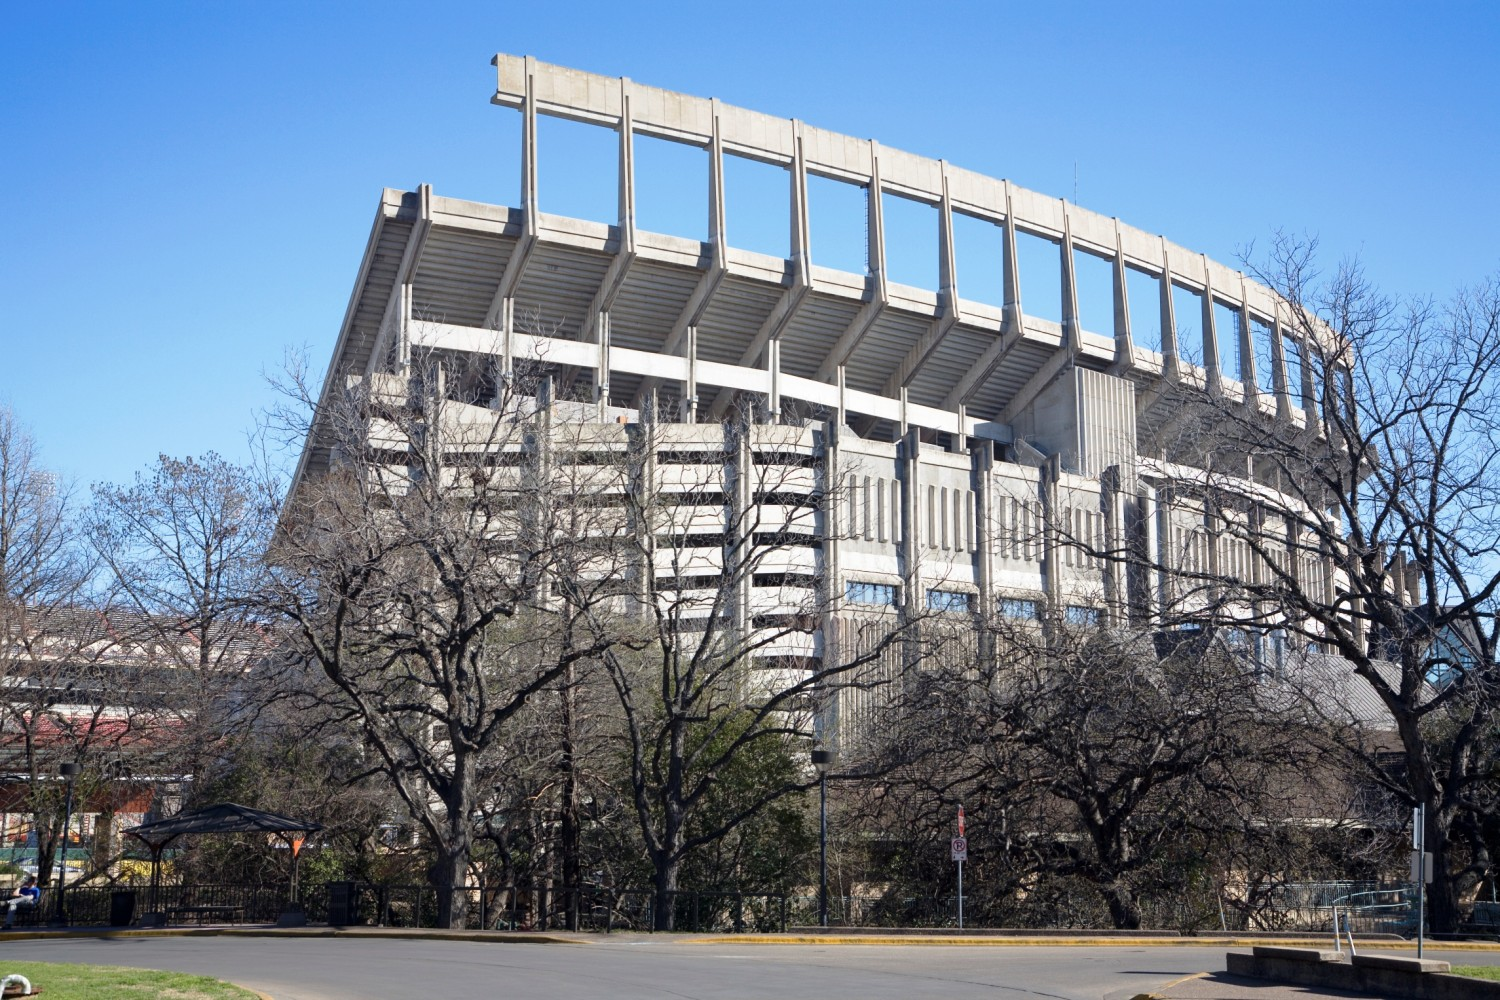 This photo was taken in late February, well before the trees began to leaf out - which allow the viewer to see through the trees.  In the lower ldeft portion of the photo, it should be noted that the north endzone seating has been demolished, and the University of Texas is preparing to add two levels of seating there, complete with clubhouses. This photo was taken from the East Mall fountain, and the Texas Exes Alumni Center is seen to the lower right.